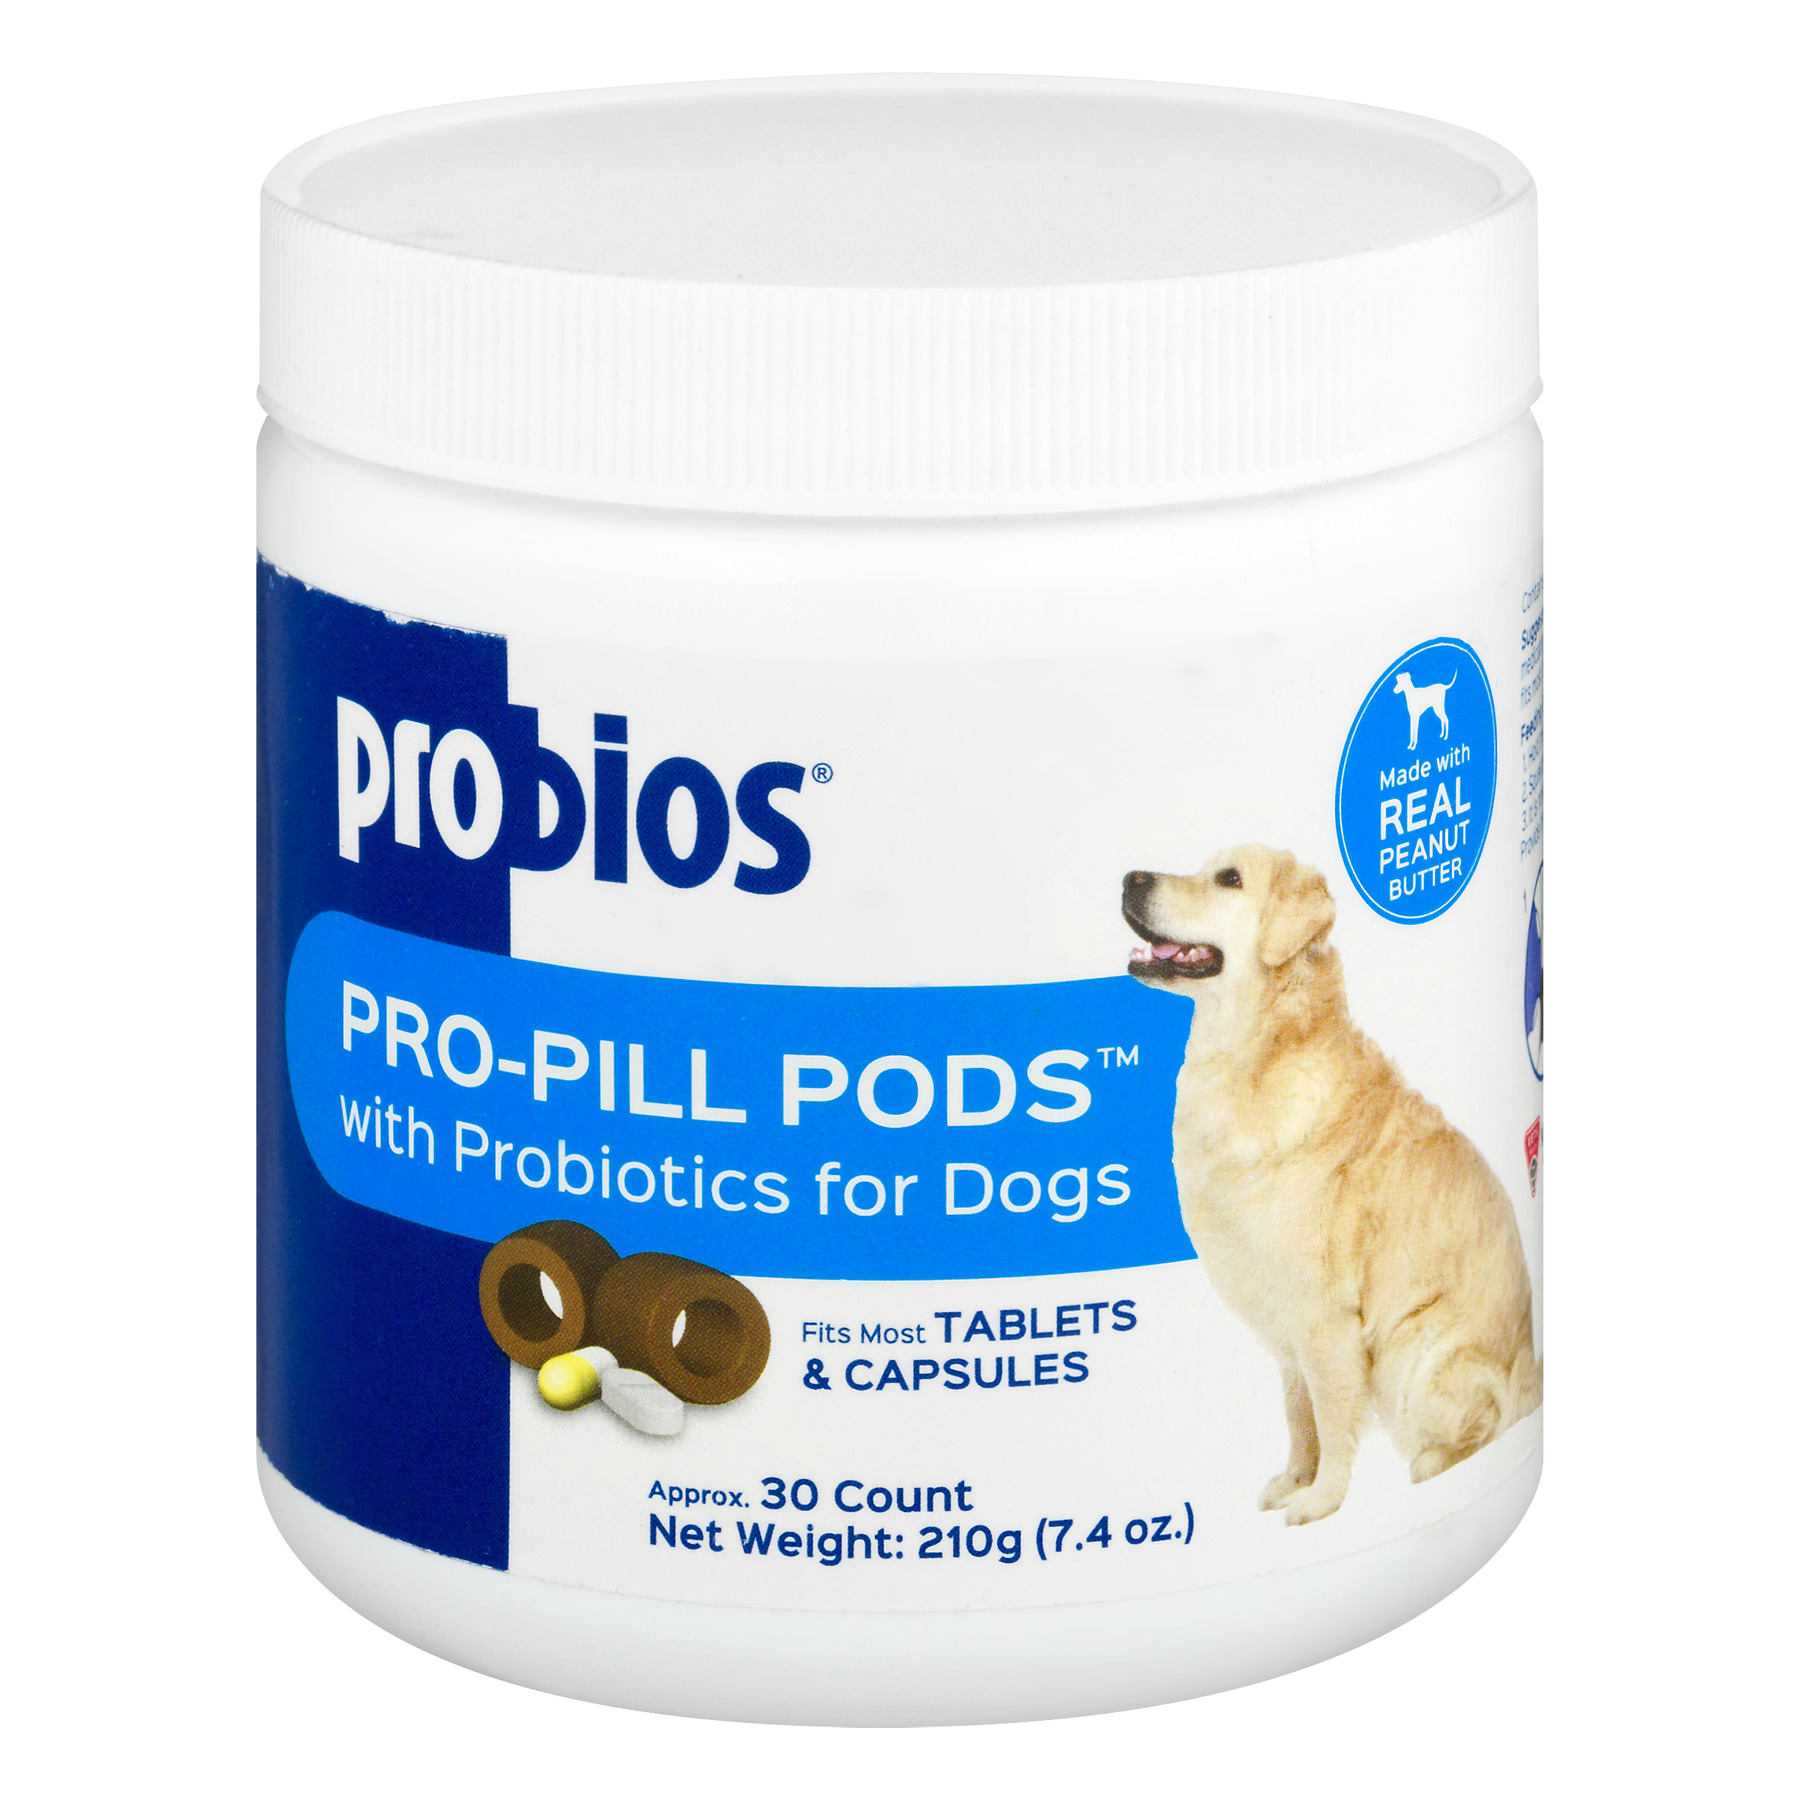 Probios Pro-Pill Pods with Probiotics for Dogs - 30 CT30.0 CT